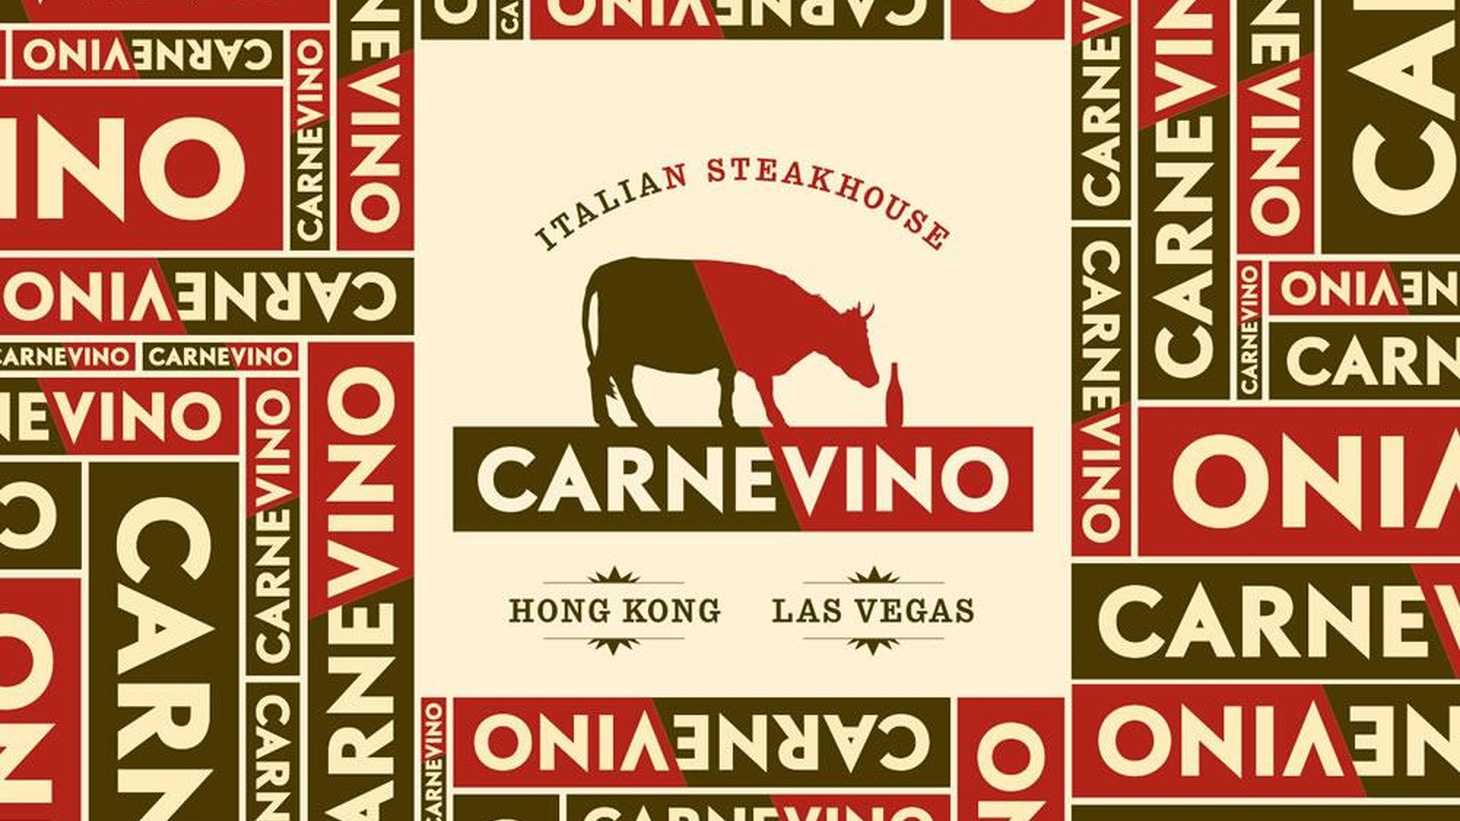 Jonathan Gold Evan Kleiman visit a steakhouse in Las Vegas. Nowadays there are many to choose from. But Jonathan Gold focused on Carnevino...